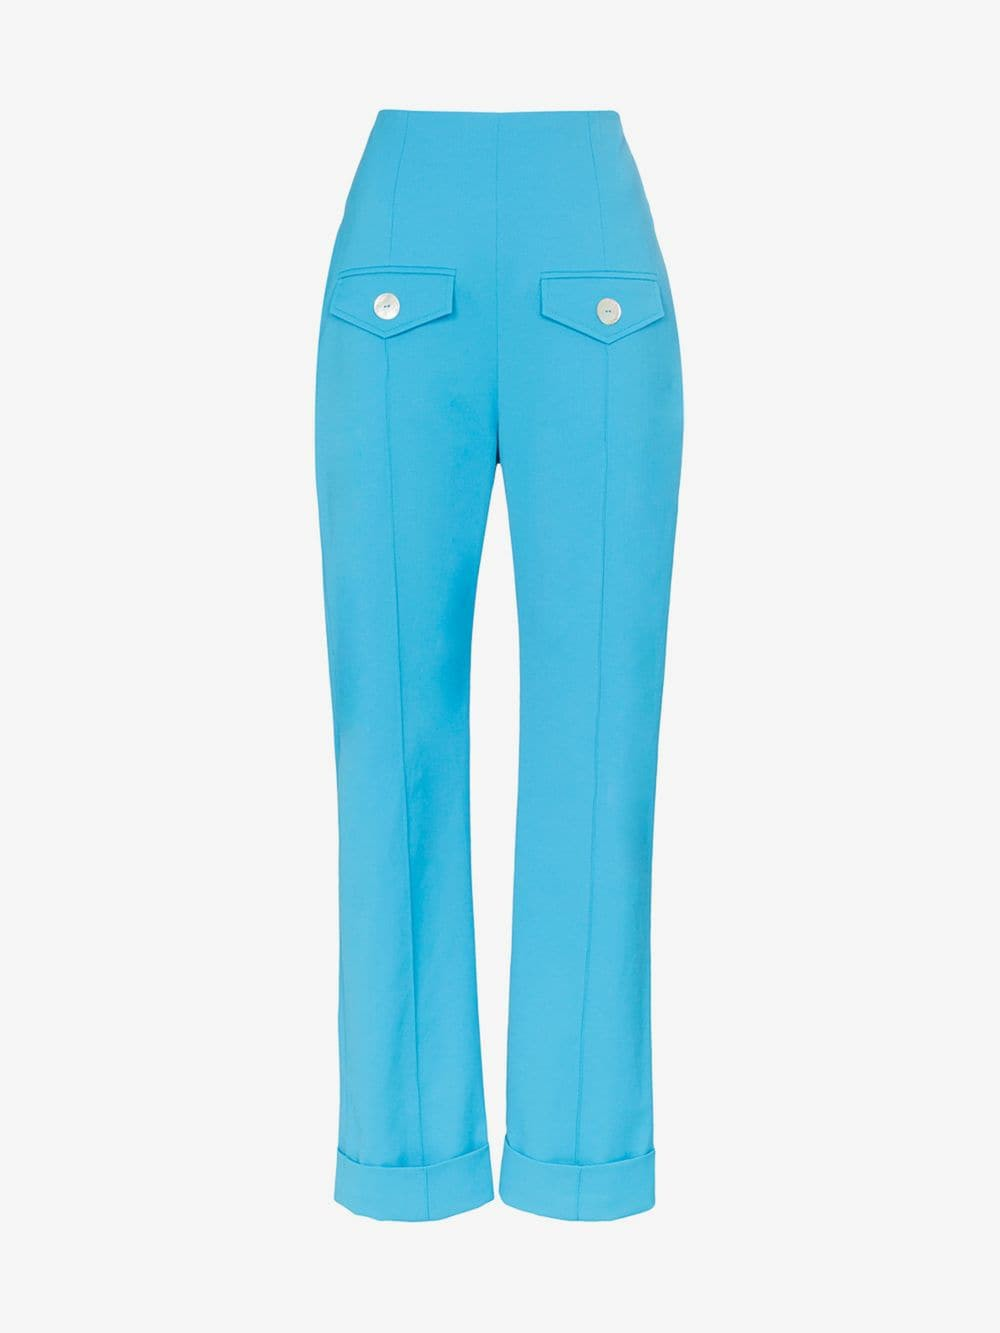 George Keburia high-waisted pocket detail straight leg trousers in blue